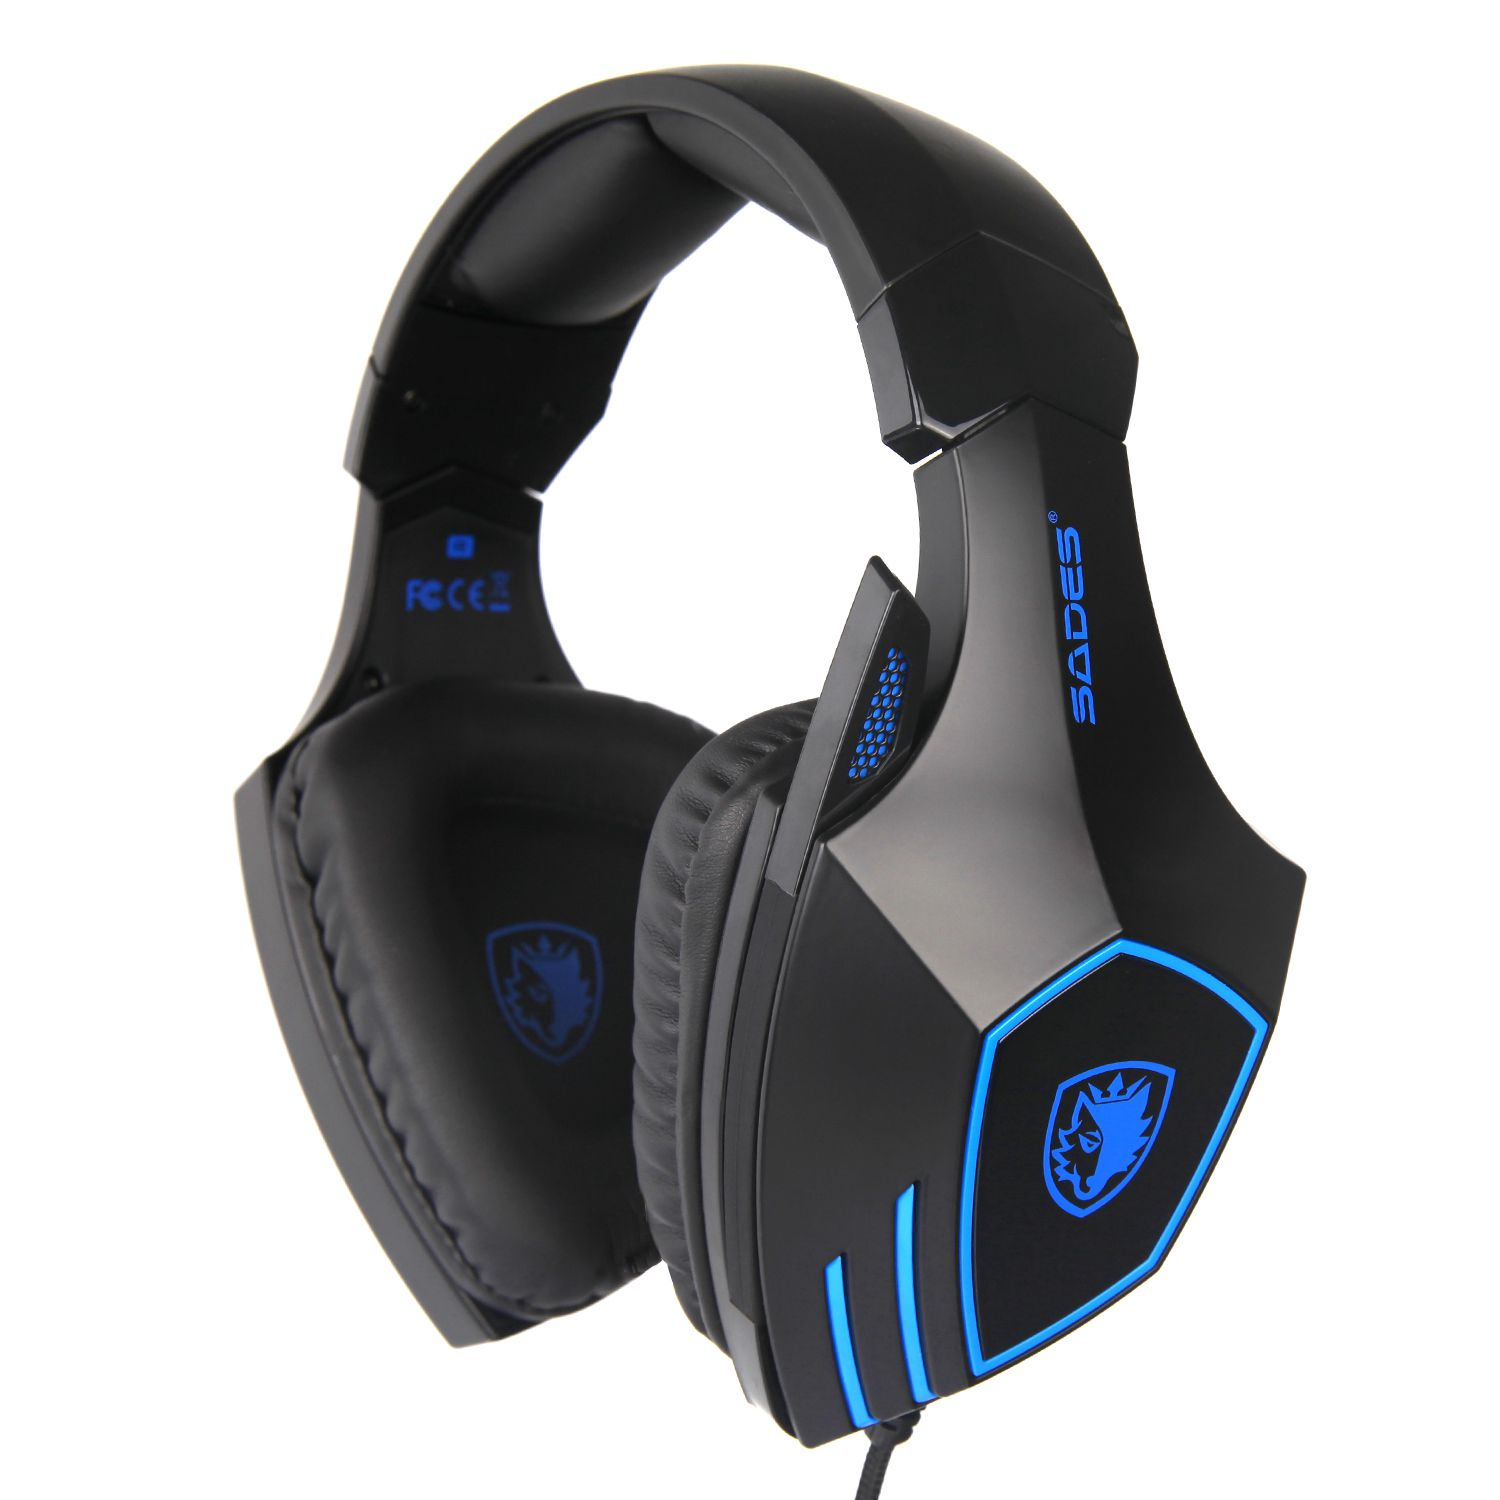 Top Deals SADES SA819 Gaming Headset Headset Cabled 3.5mm PC/XboxOne/PS4 Earbud with Microphone Volume ControlTop Deals SADES SA819 Gaming Headset Headset Cabled 3.5mm PC/XboxOne/PS4 Earbud with Microphone Volume Control